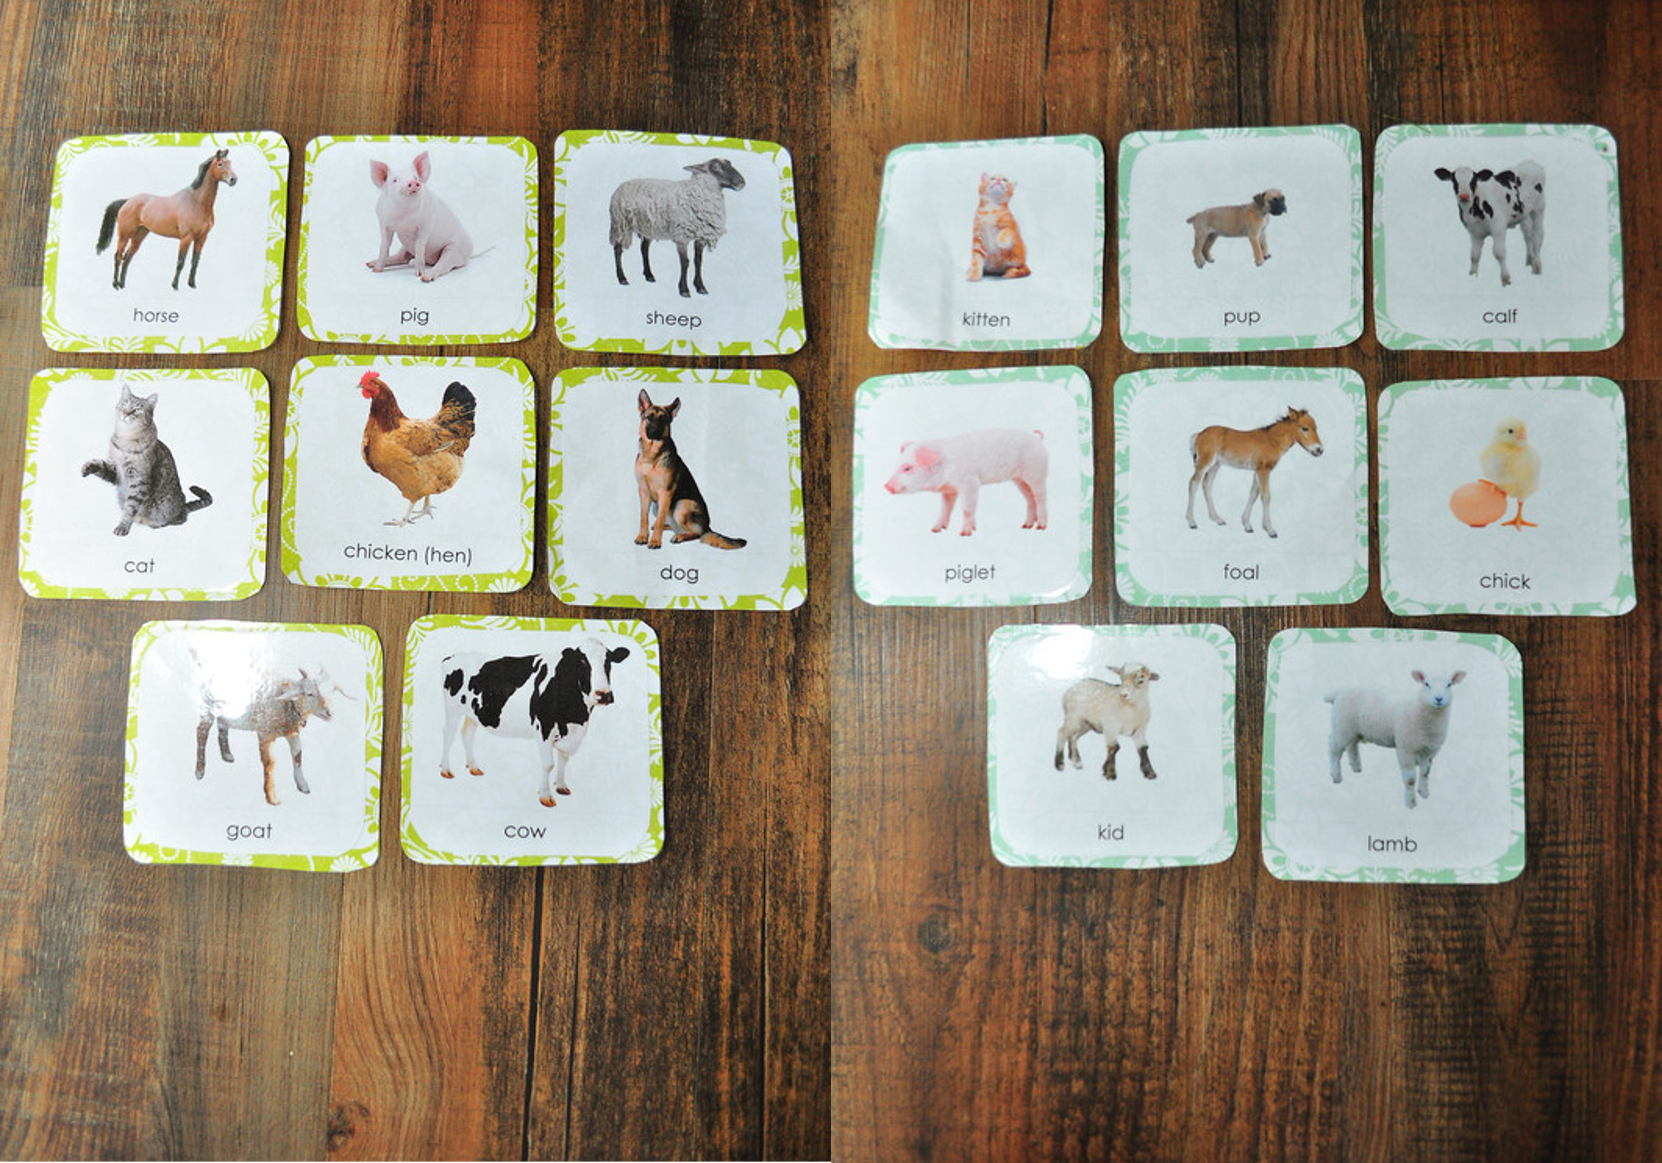 Montessori Inspired Farm Animal Cards | This Girl's Canon